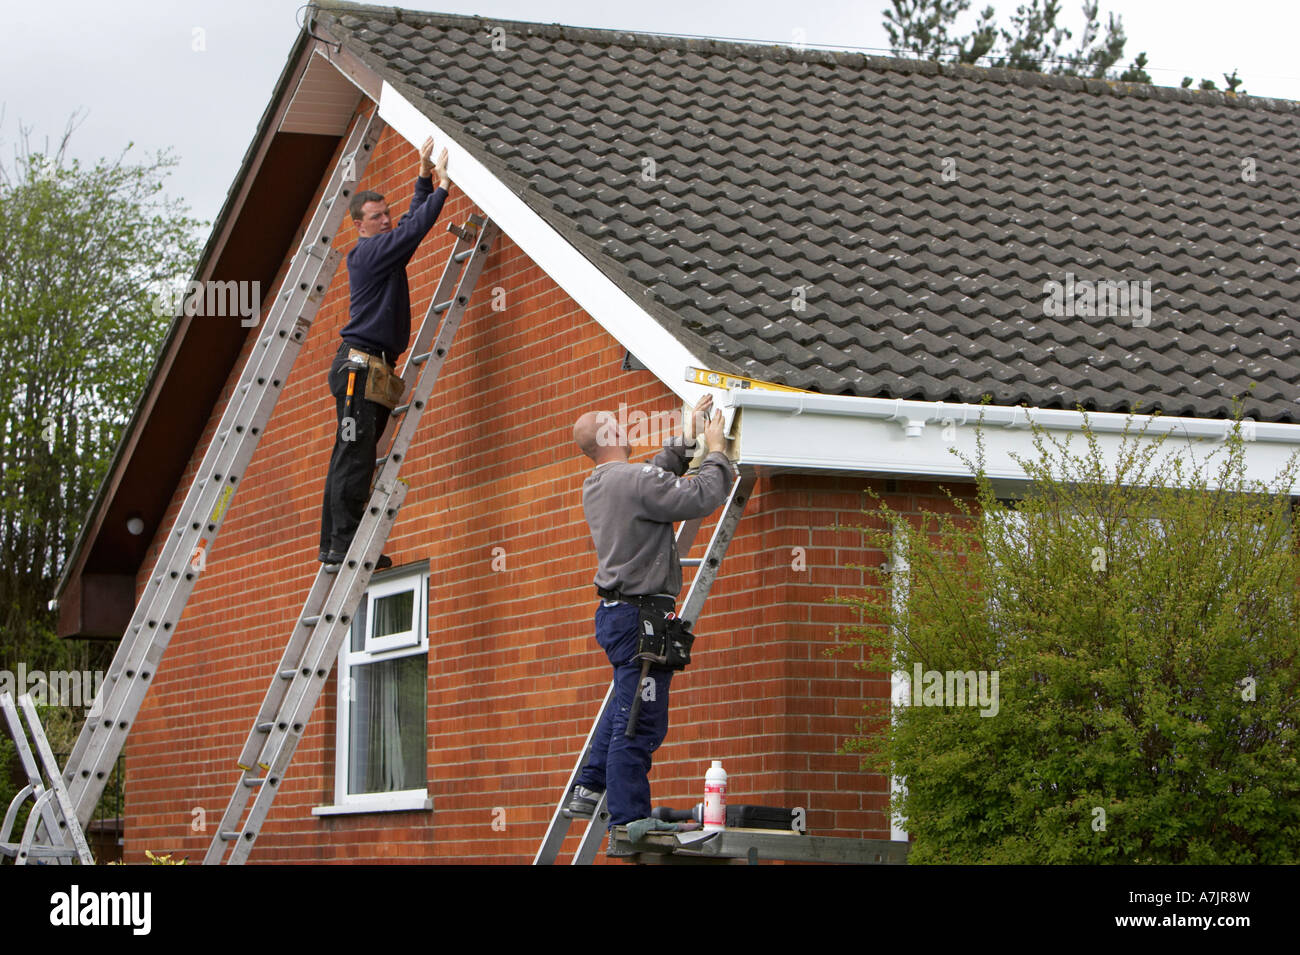 Workmen At The Top Of Ladders Installing White Pvc Cladding Over Old Wooden Panels On A Red Brick Bungalow